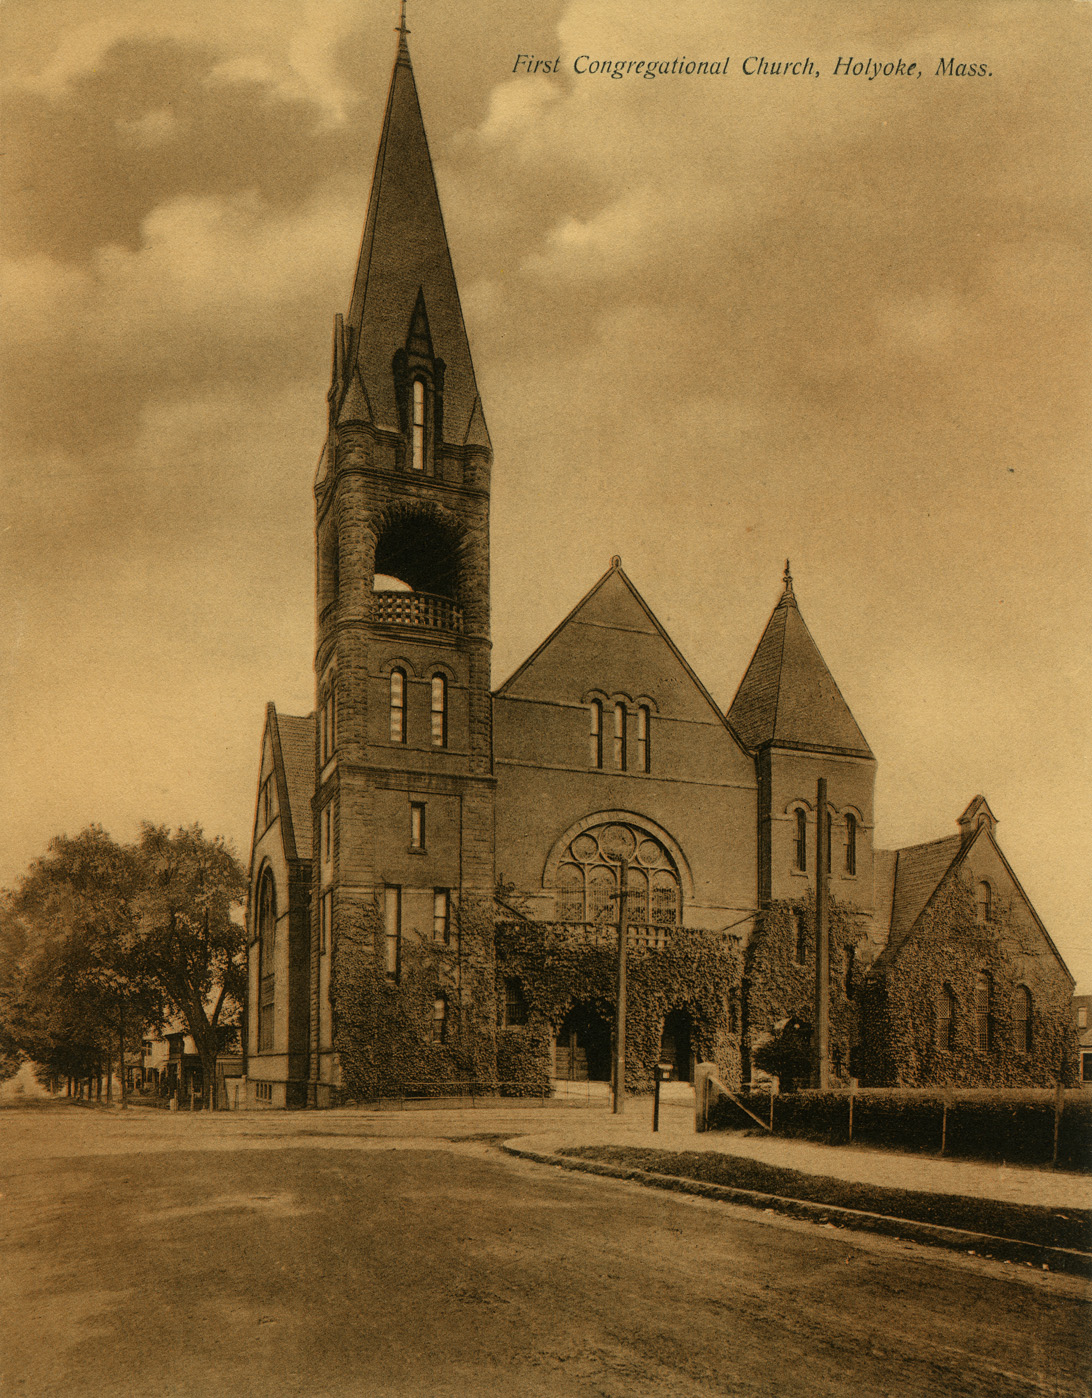 United Congregational Church of Holyoke (Holyoke, Mass.) Records image